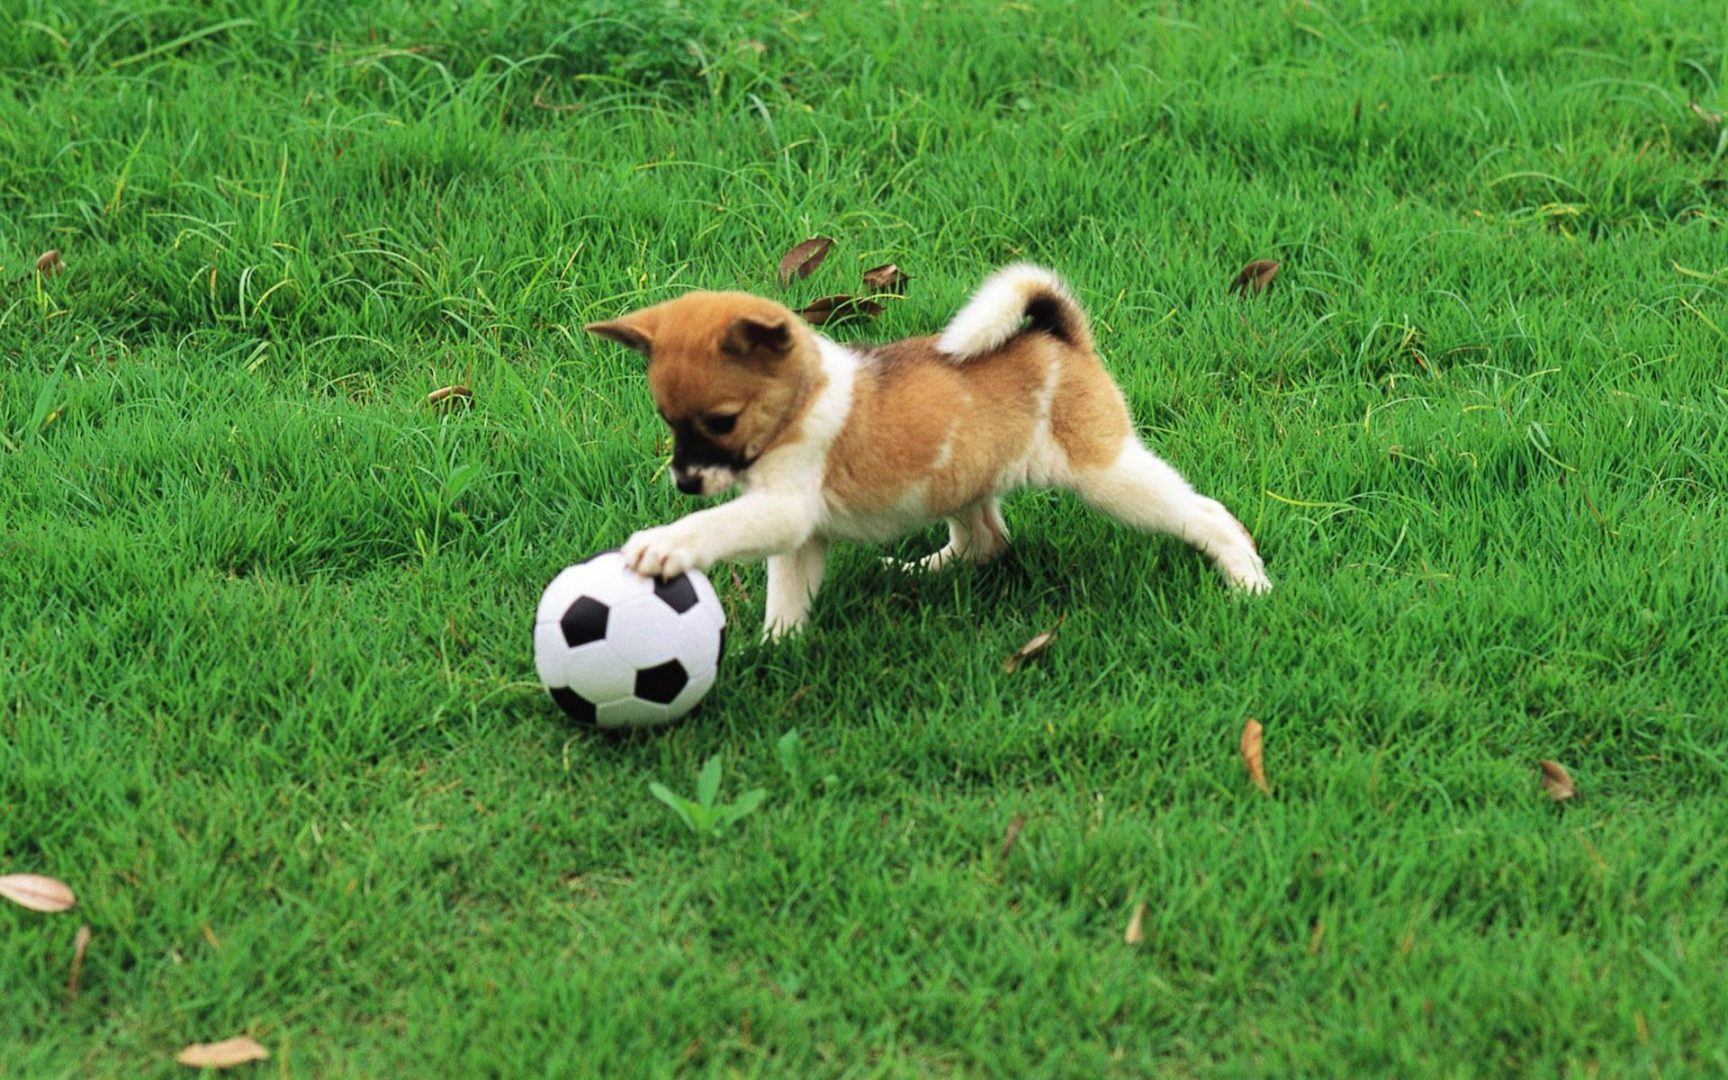 A dog playing with a football.